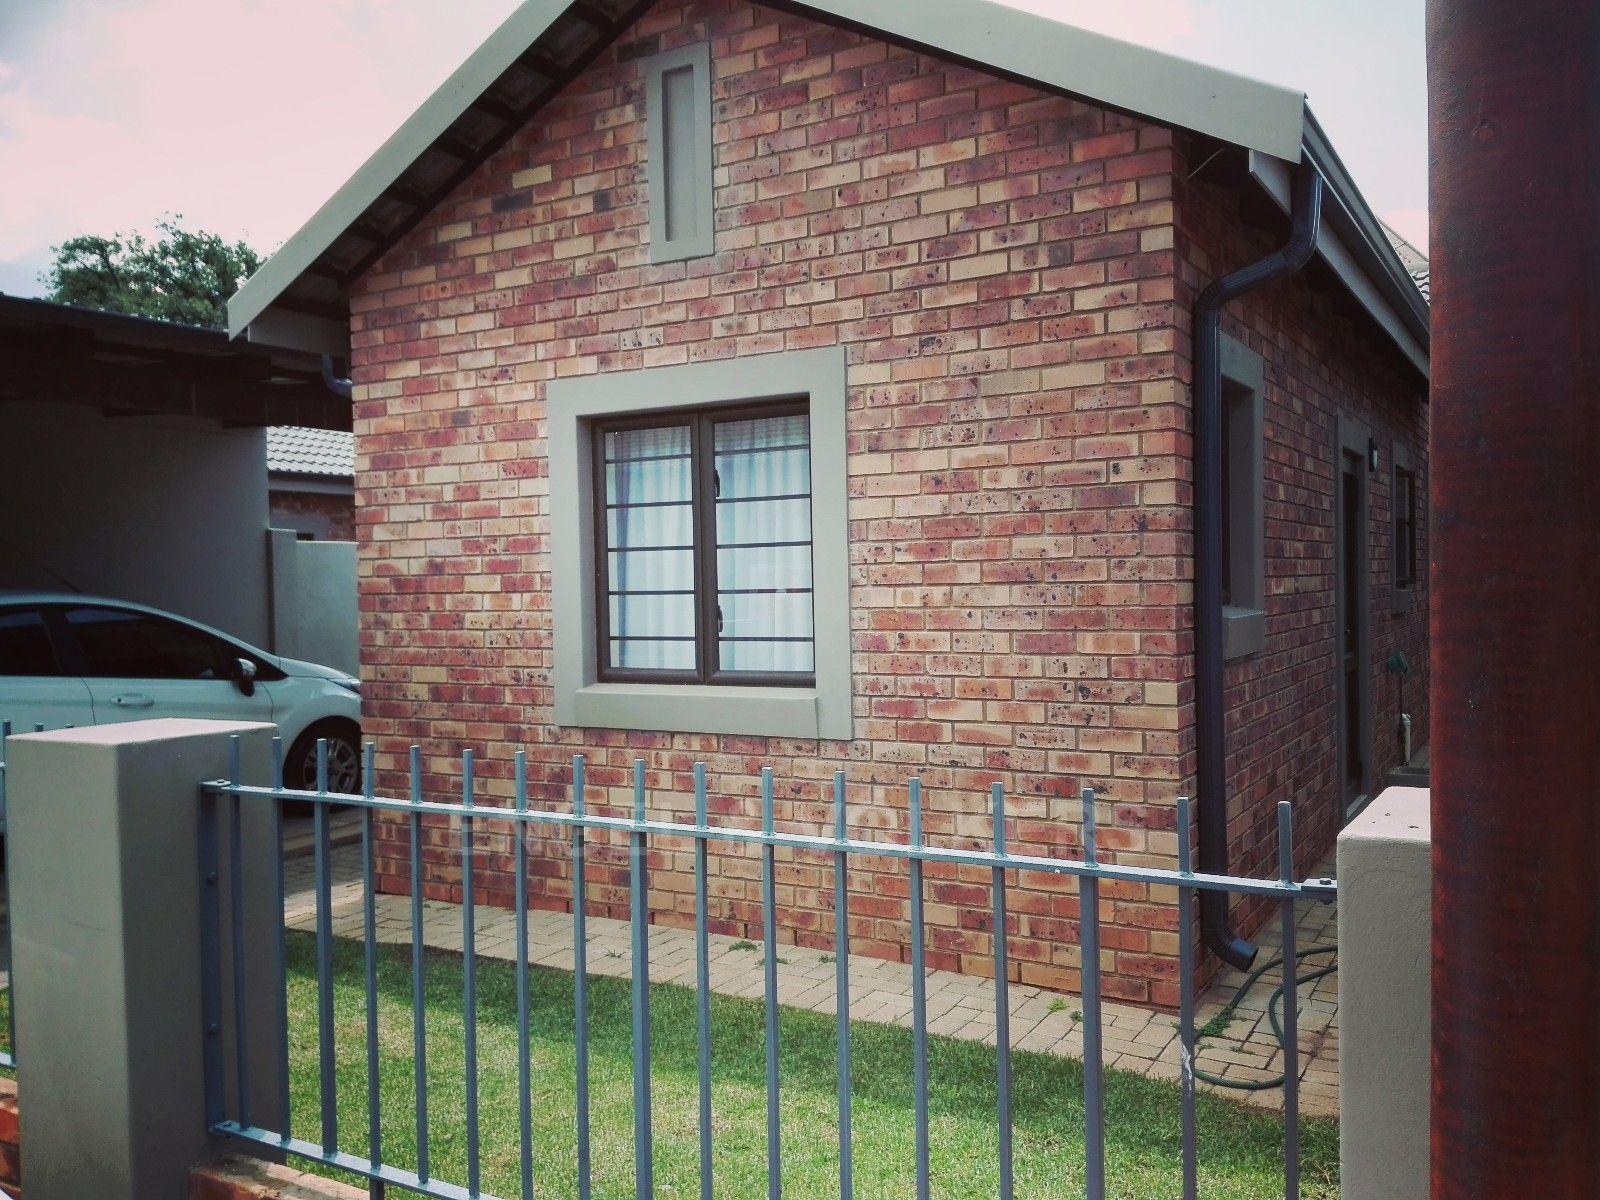 Potchefstroom Central property for sale. Ref No: 13451927. Picture no 1